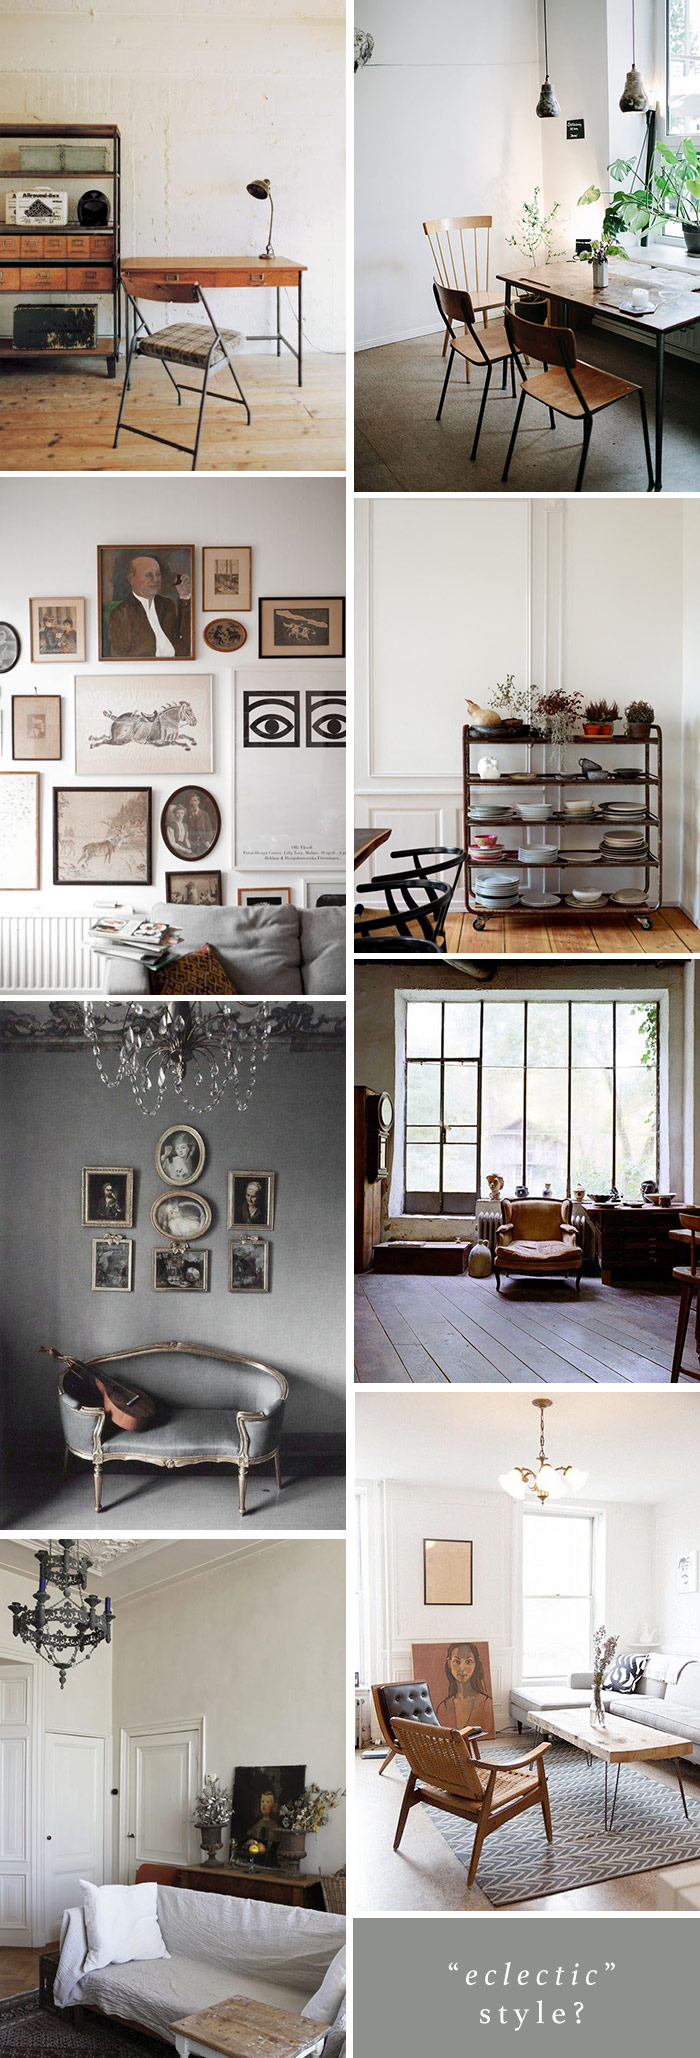 eclectic-vintage-interiors